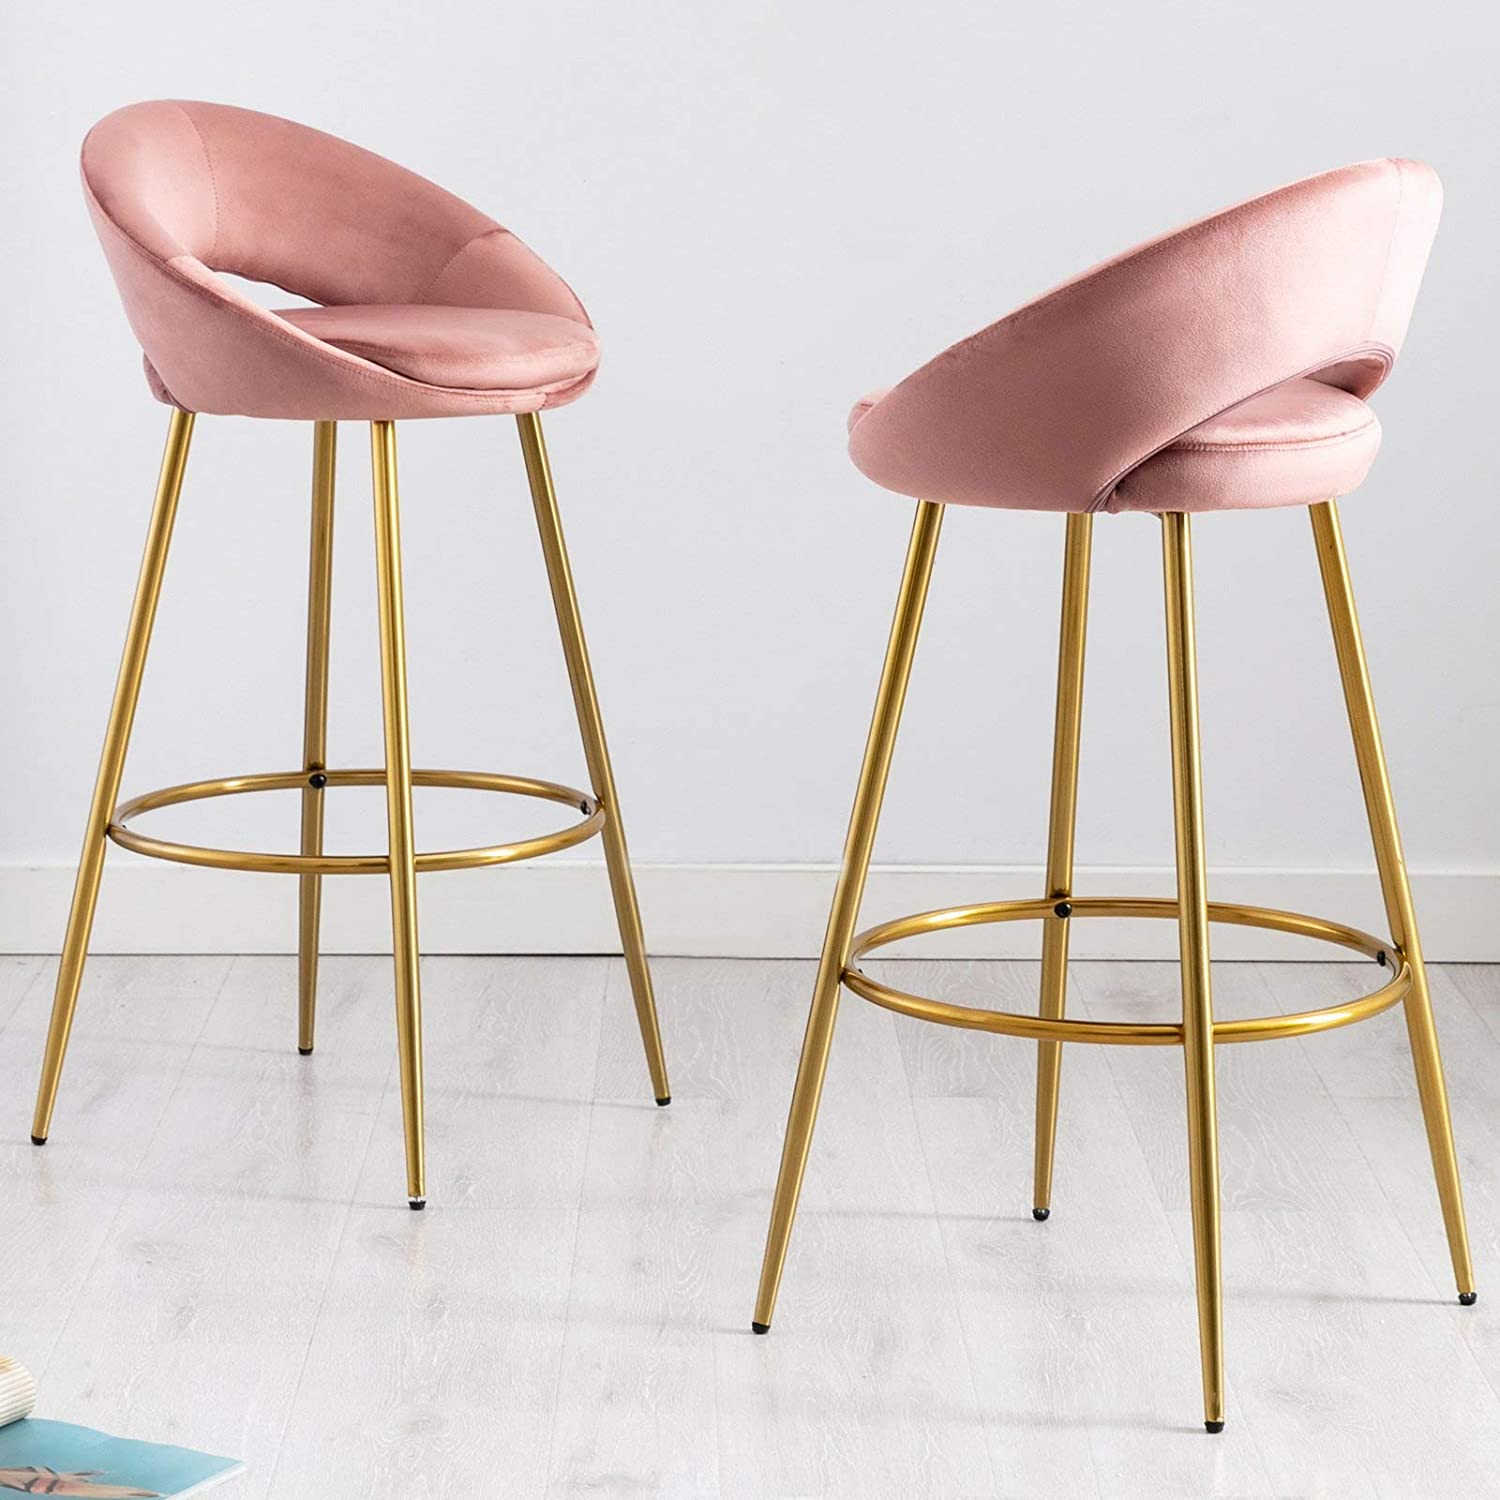 Set of 2 Max 43% OFF Bar Stool with Open Popular shop is the lowest price challenge 30